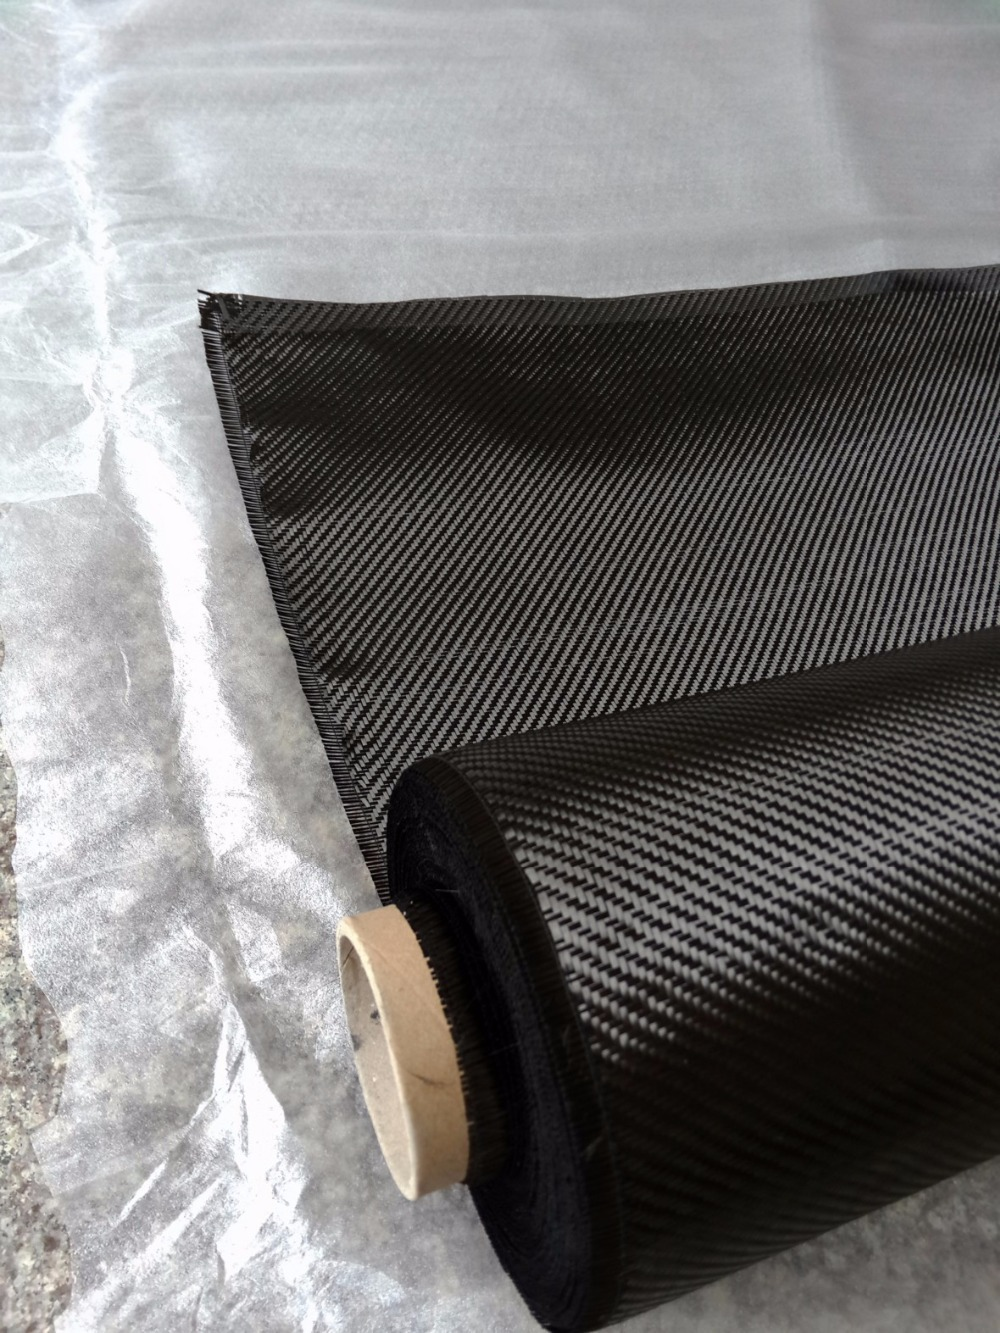 3K 100% Real carbon fiber fabric twill 200g/m2 carbon cloth 1mX1m, high quality for car parts and airplane models(China (Mainland))